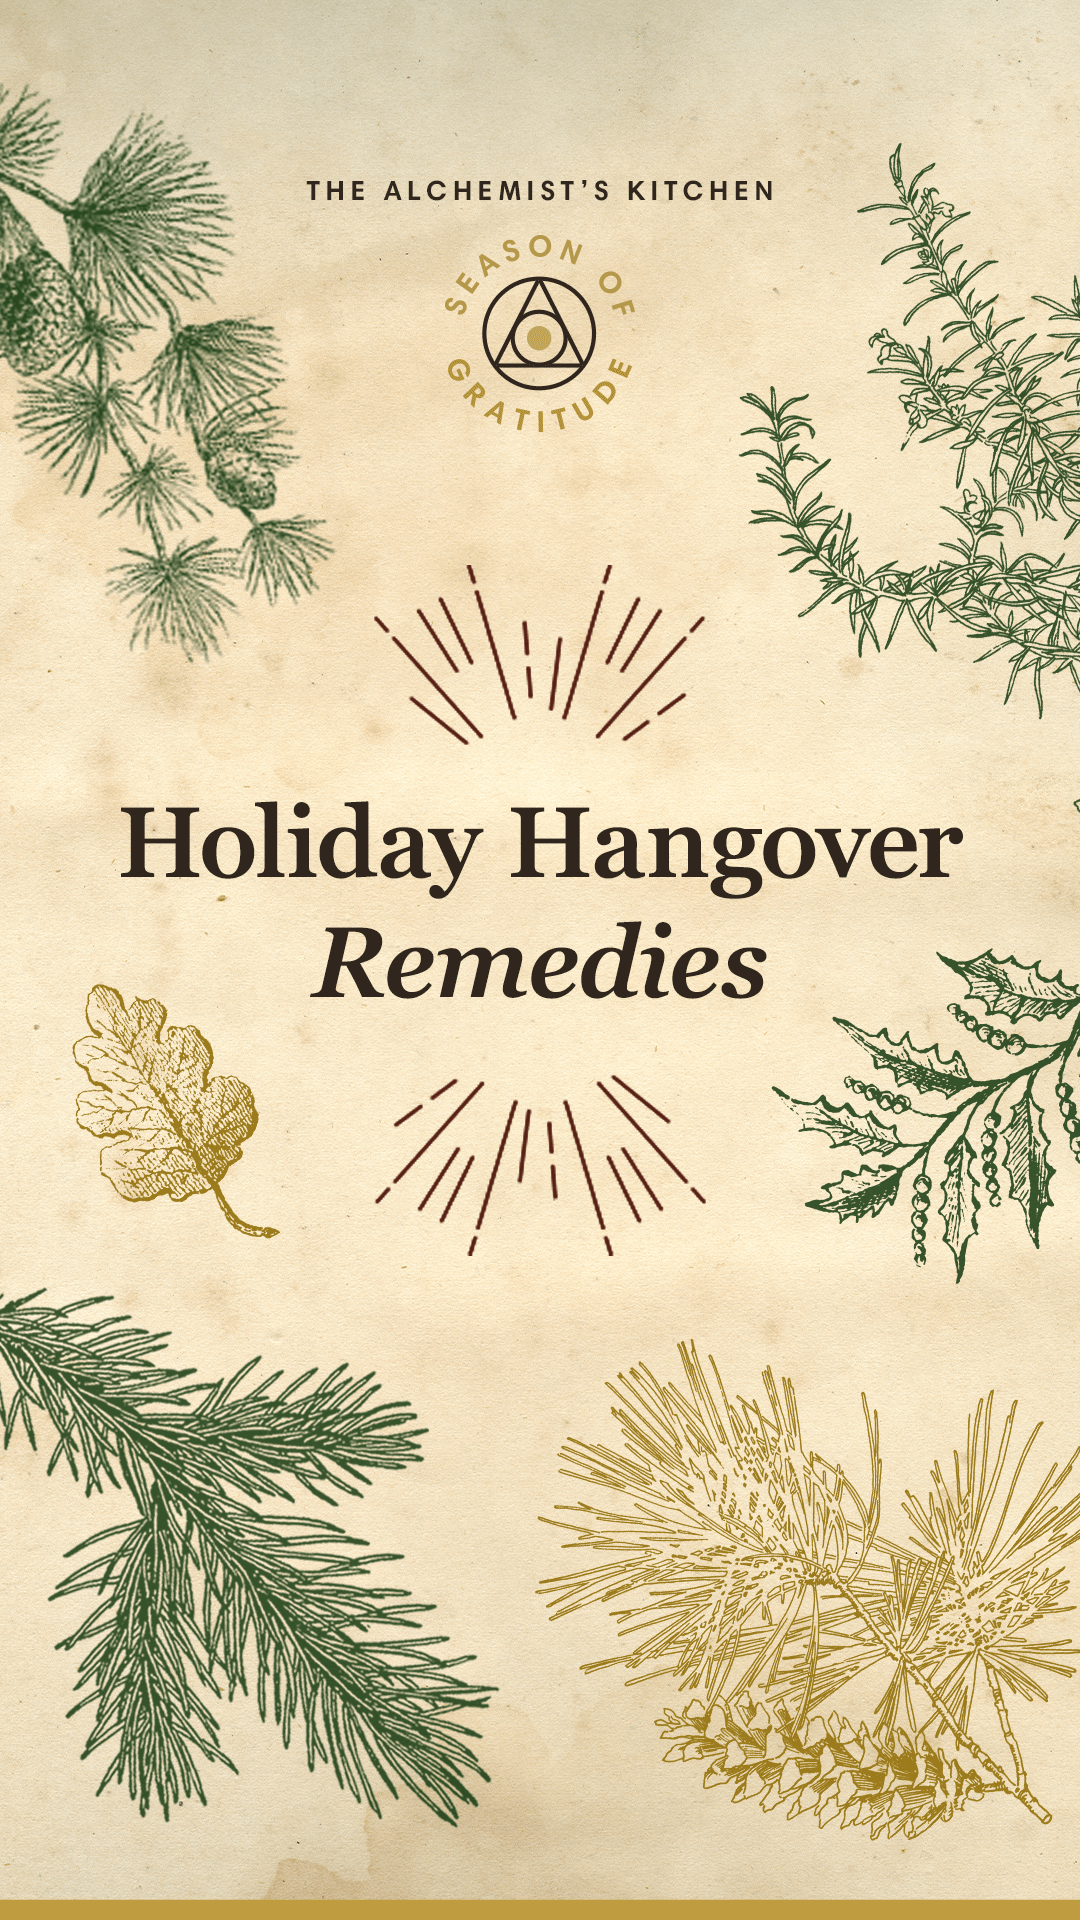 TAK_December-Social_Hangover-Remedies_1